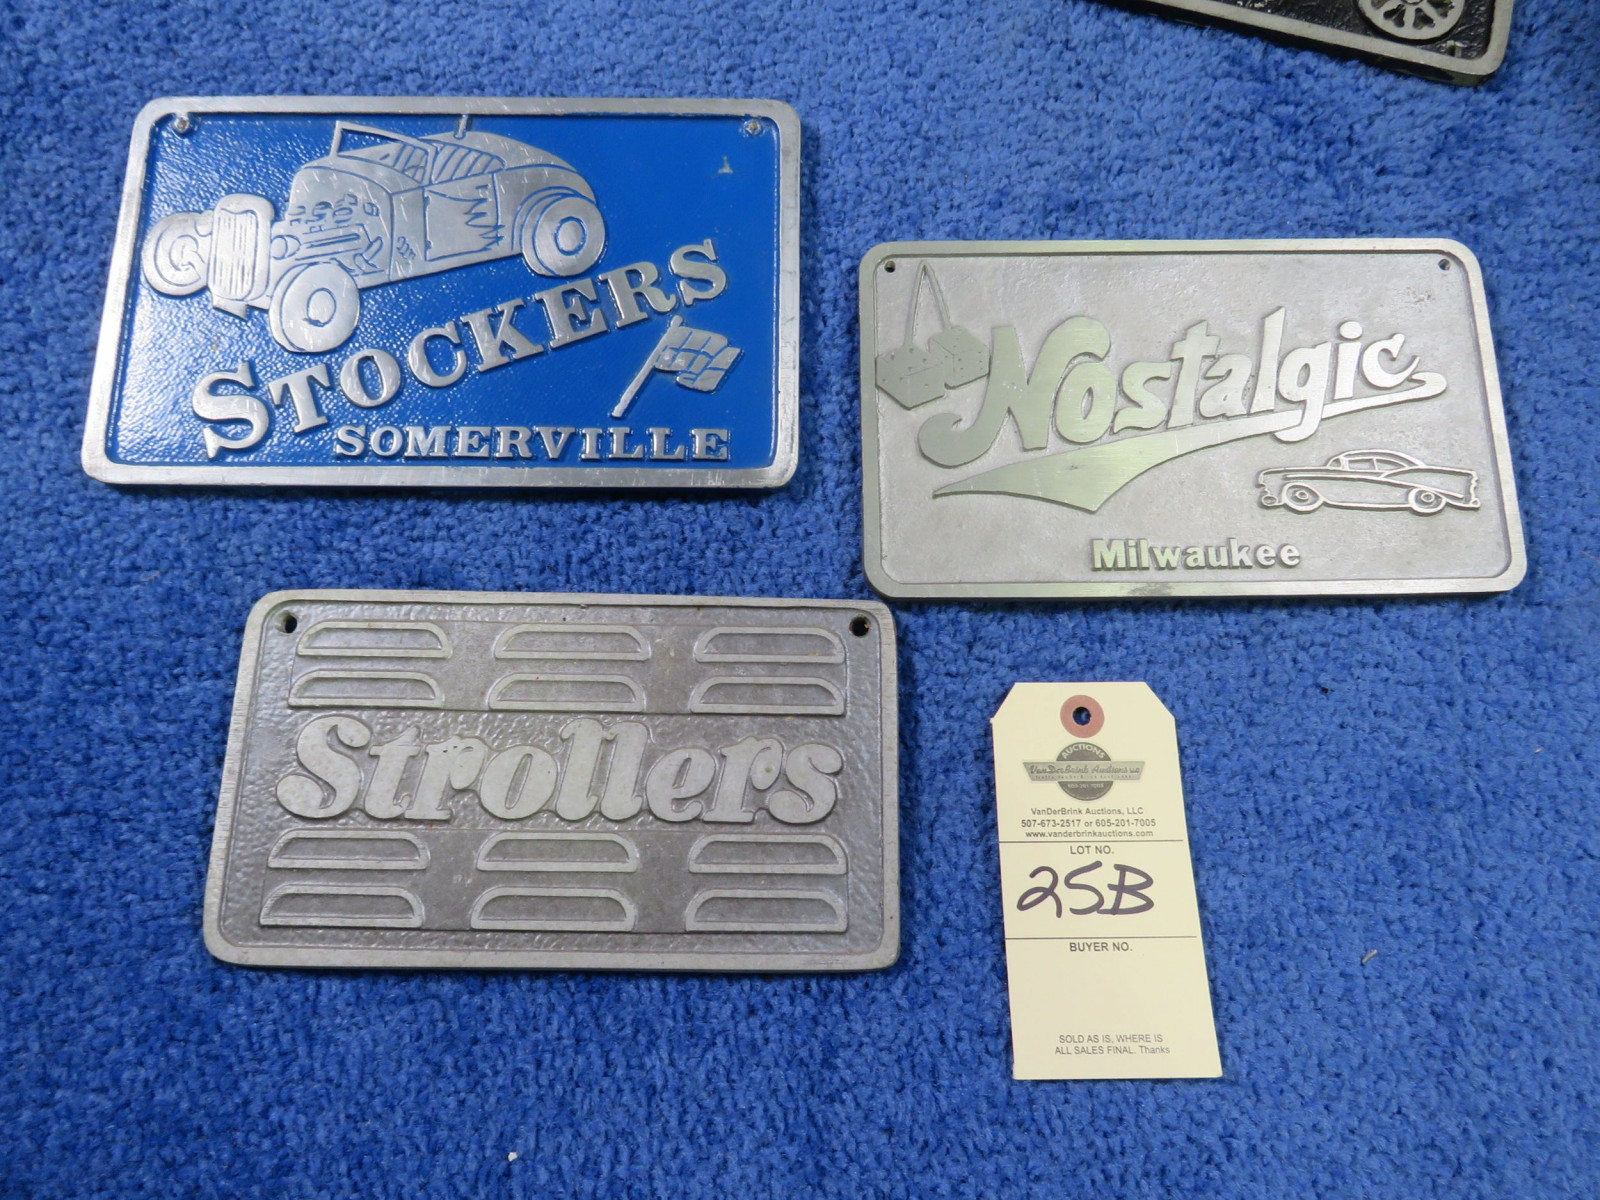 Vintage Pot Metal Vehicle Club Plates Strollers, Stockers, Nostalgics - Image 1